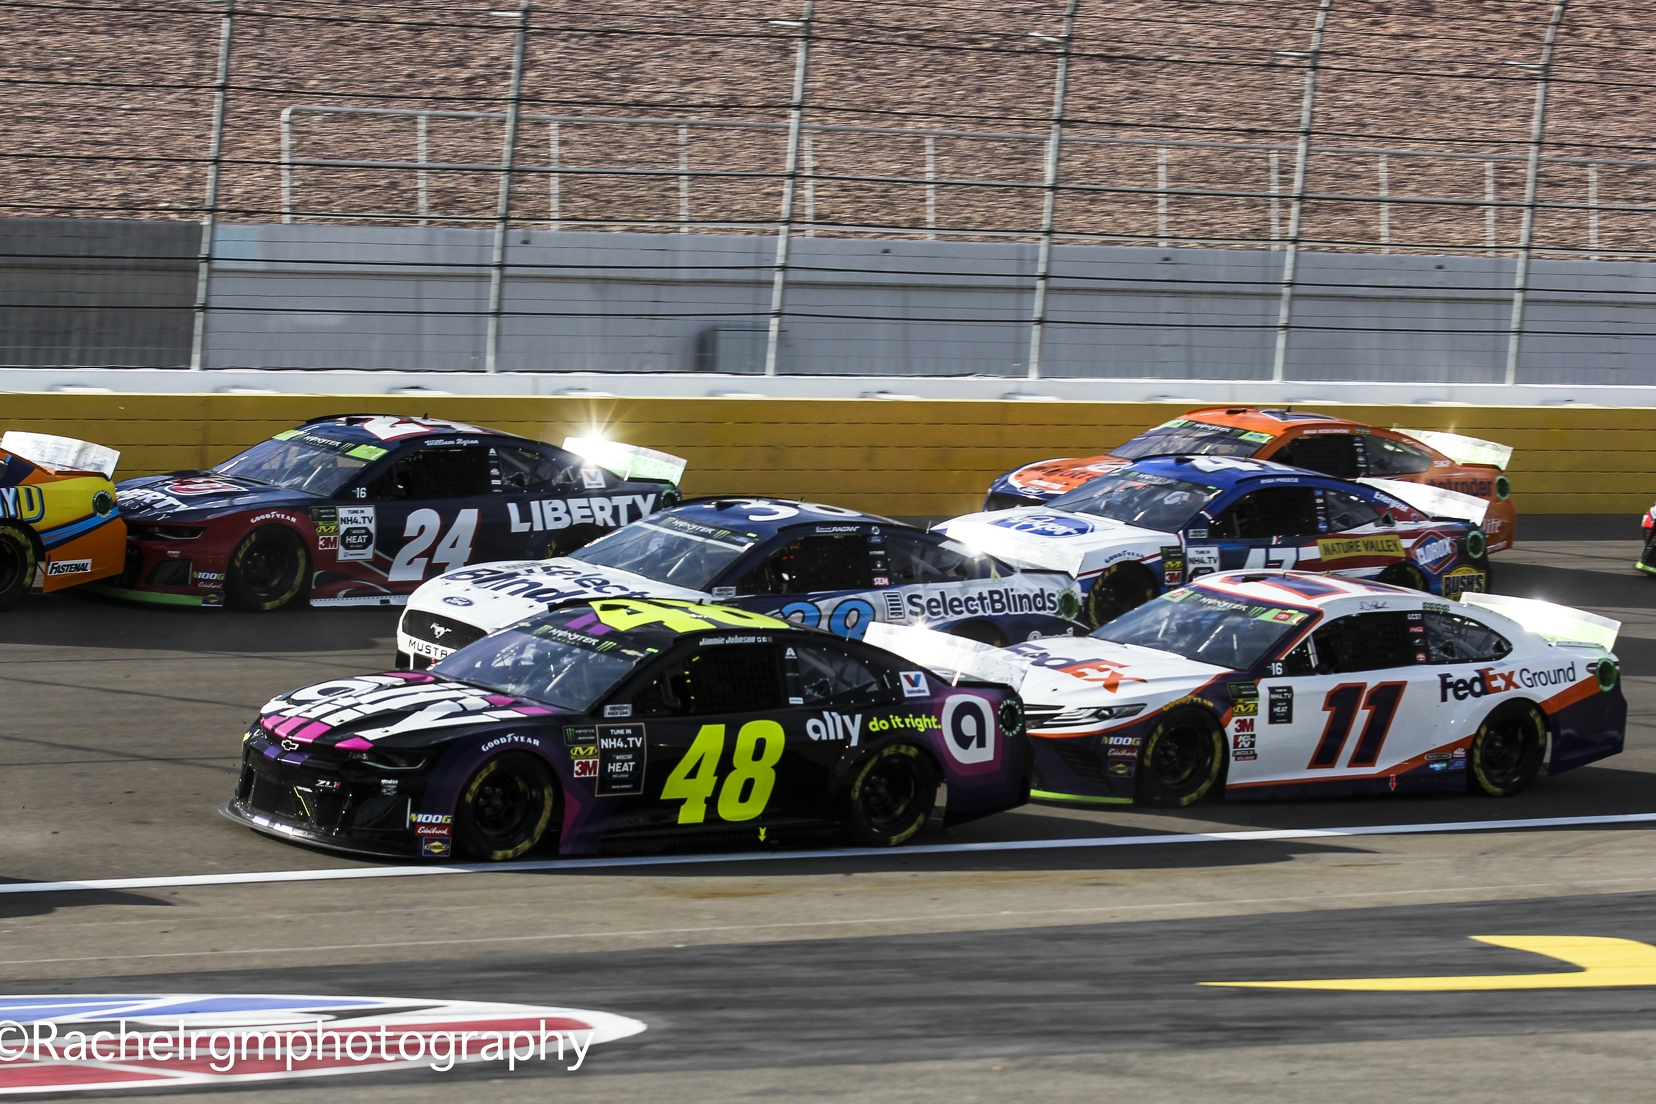 Jimmie Johnson and Denny Hamlin make it three-wide going into Turn 1 at Las Vegas Motor Speedway.